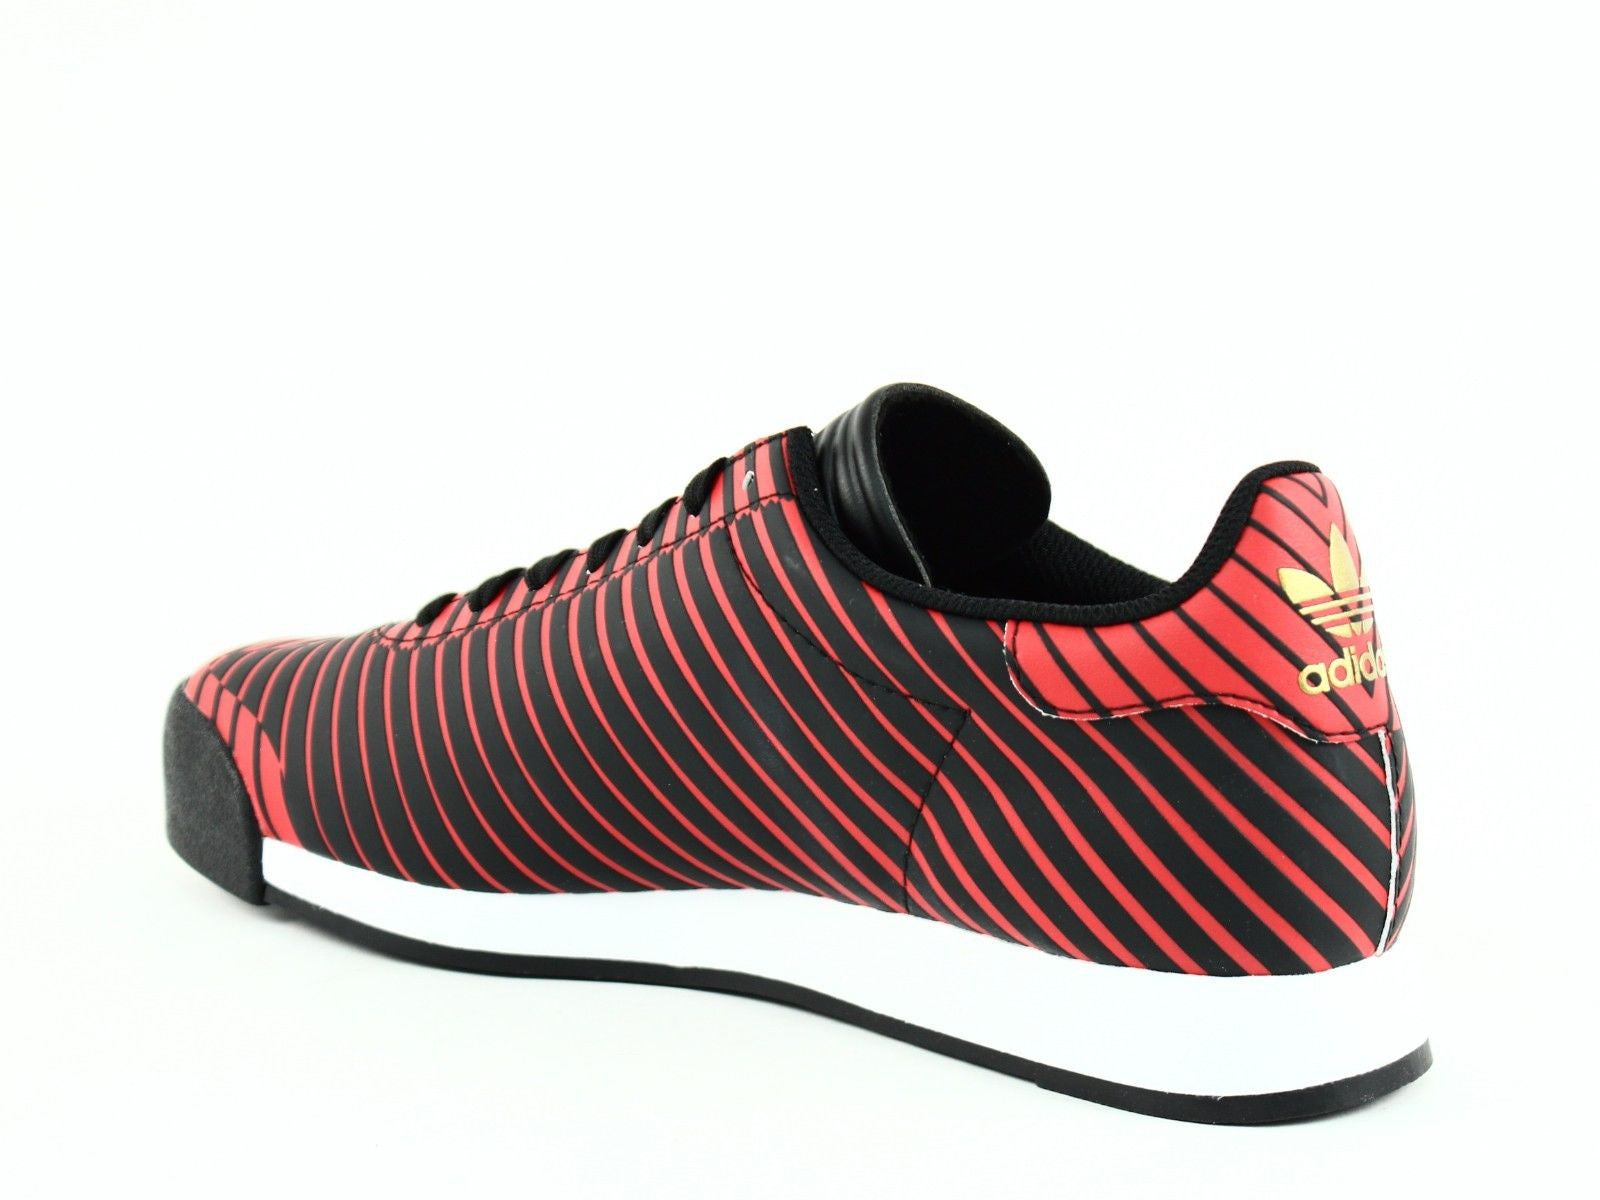 adidas samoa red and black